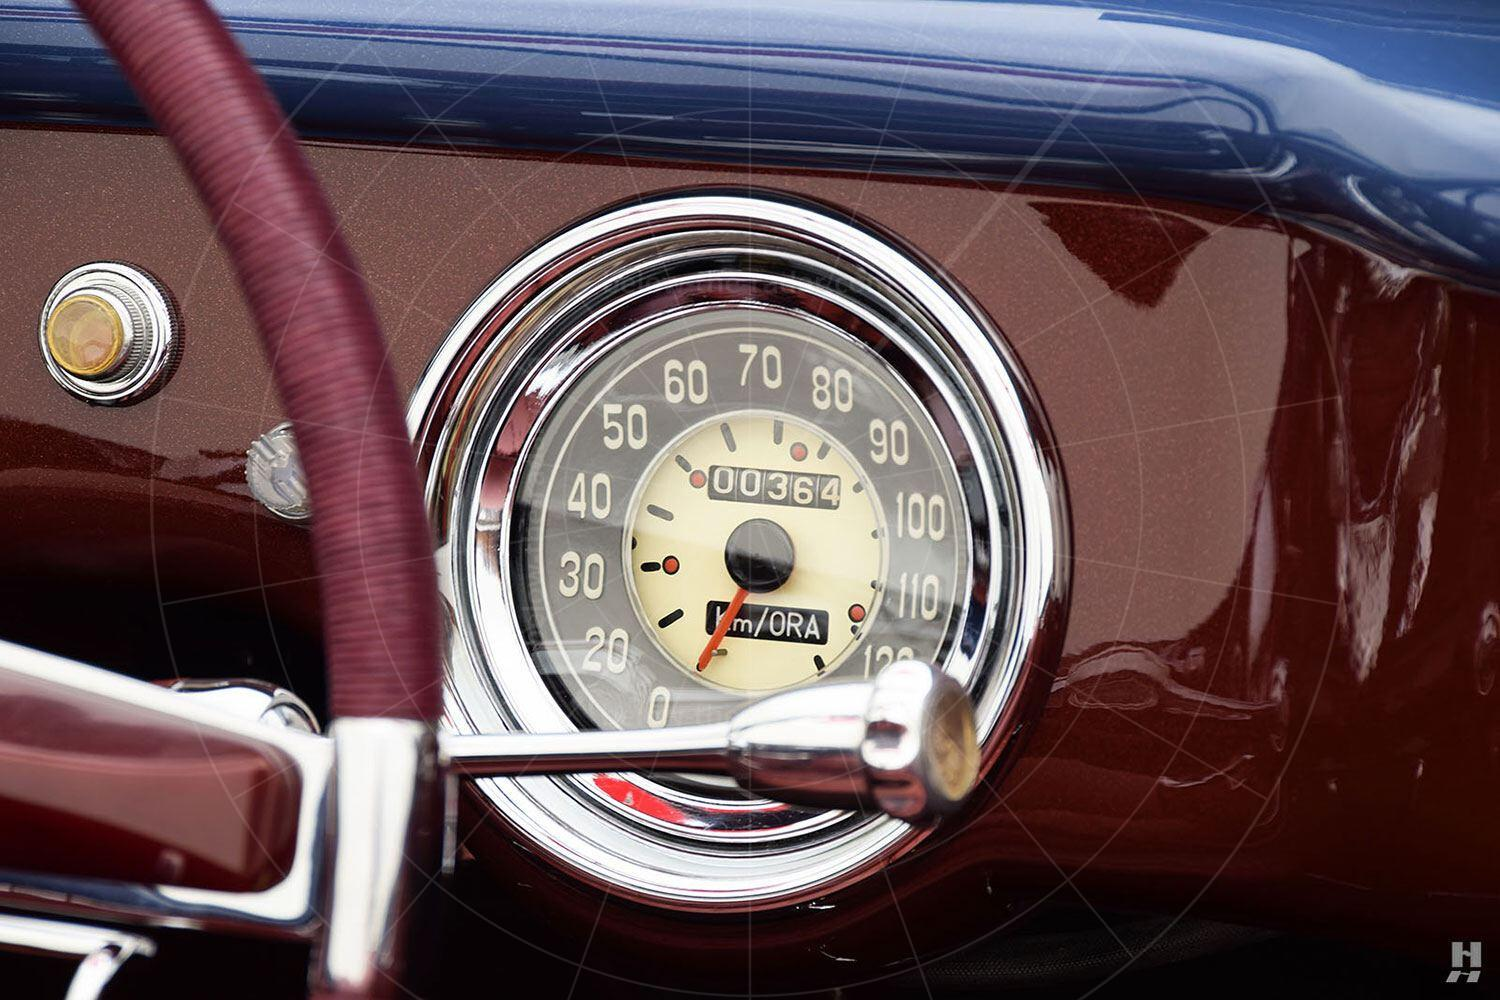 Fiat 1100 cabriolet by Allemano - dashboard Pic: Hyman Ltd | Fiat 1100 cabriolet by Allemano - dashboard